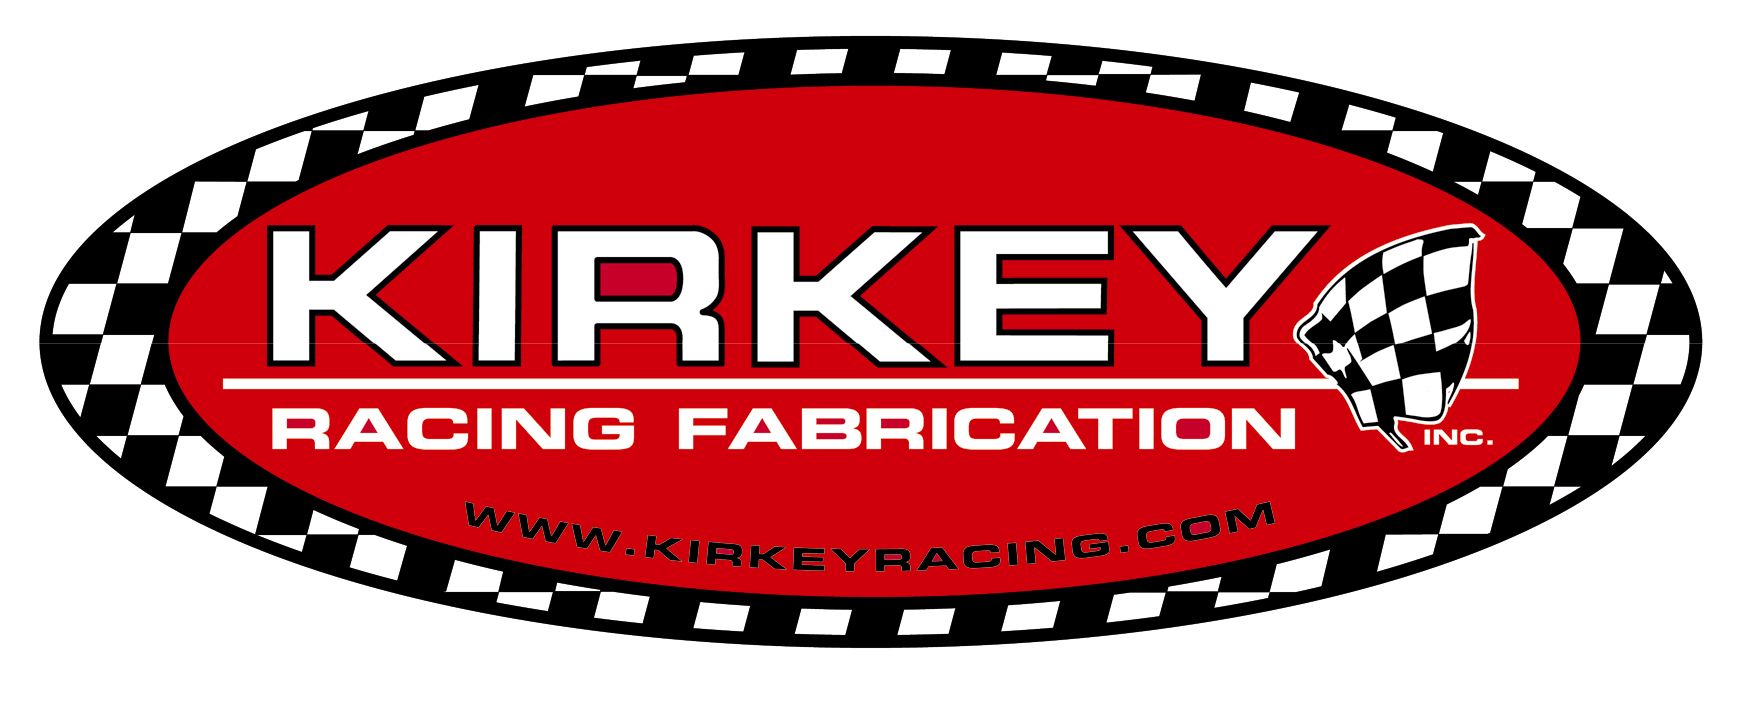 Kirkey Racing